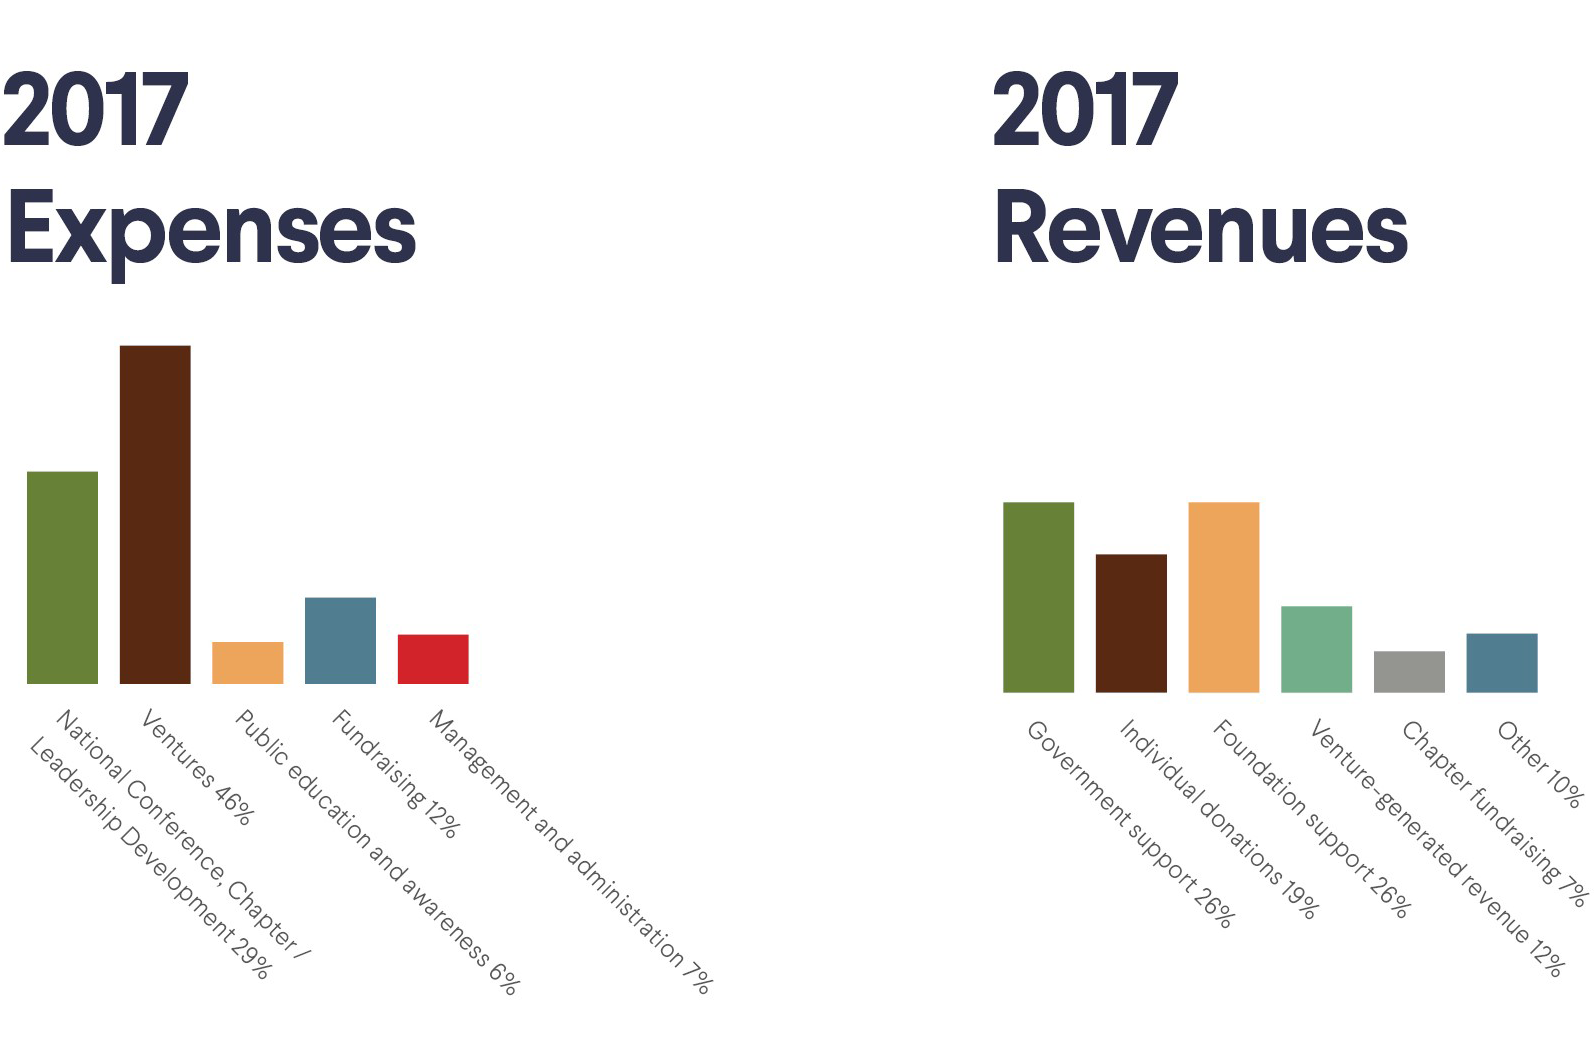 2017 Expenses and Revenue